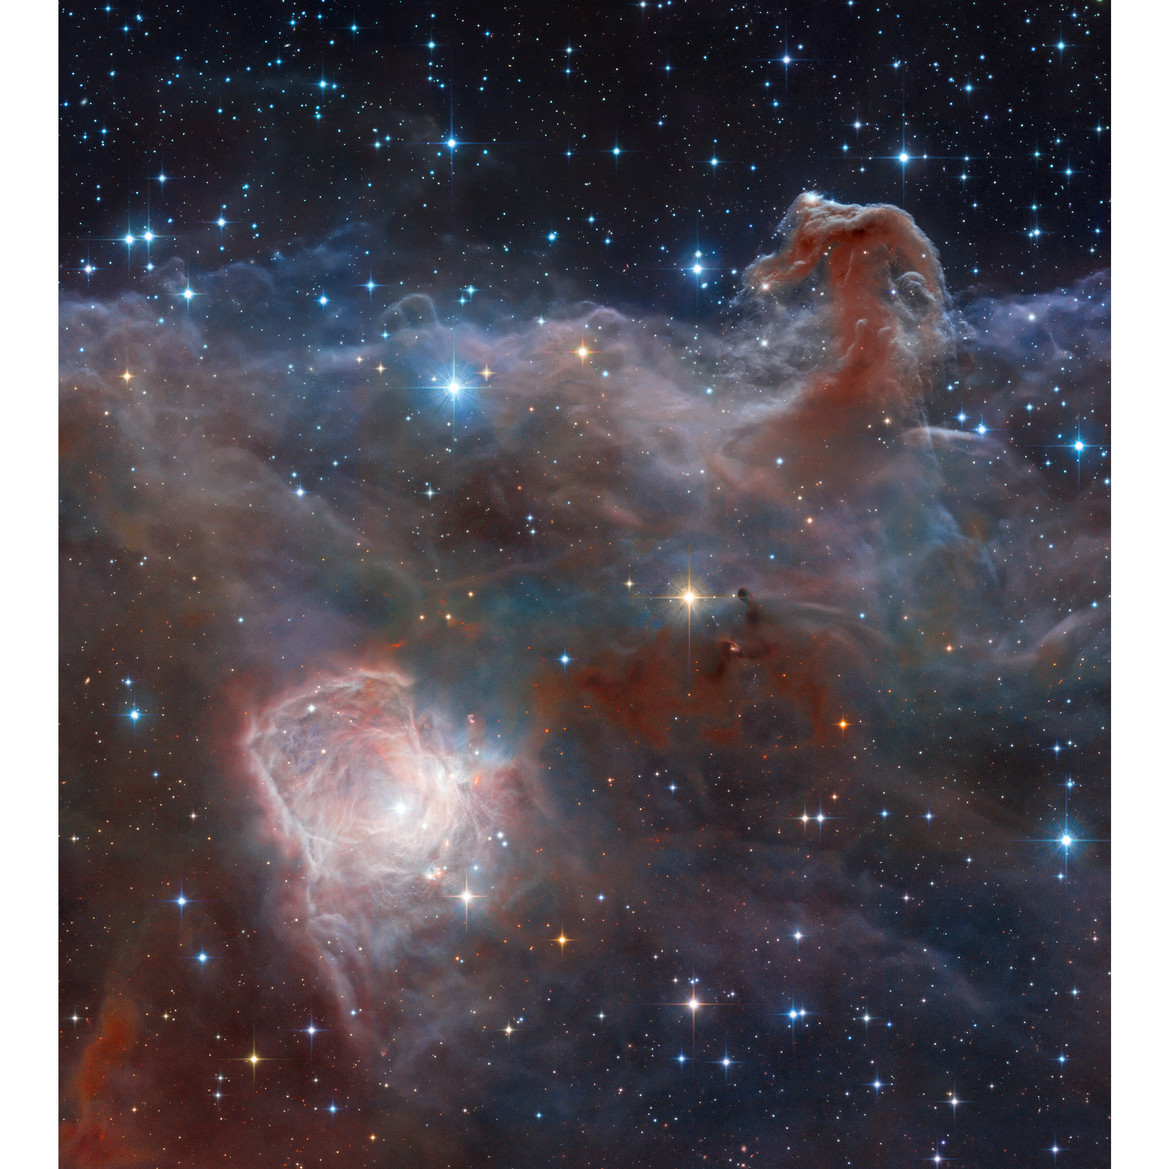 A remastered mosica of the VISTA and Hubble infrared views of the Horsehead and Flame Nebulae. Credit:ESO/J. Emerson/VISTA/Cambridge Astronomical Survey Unit & HLA/Hubble Heritage Team (STScI/AURA) & Robert Gendler